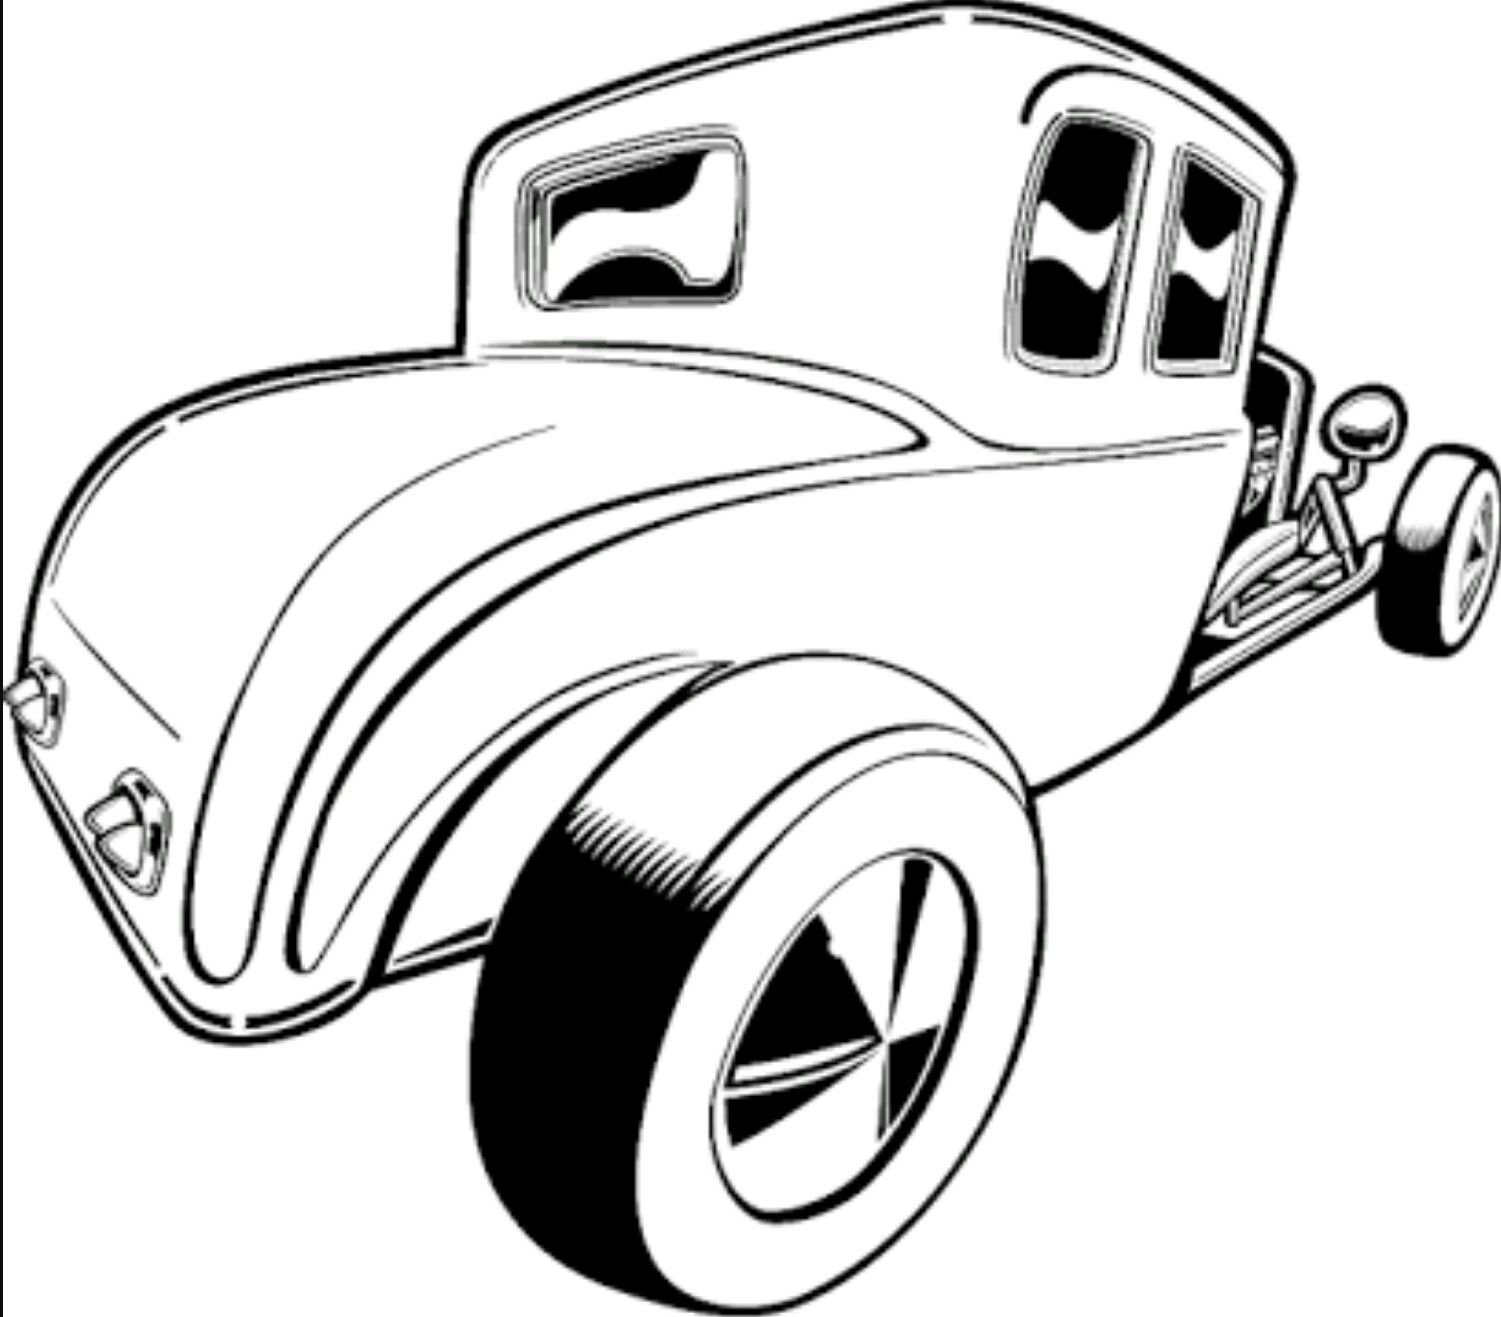 FREE CARTOON HOT ROD CAR CLIPART - ClipArt Best | Projects to Try ...